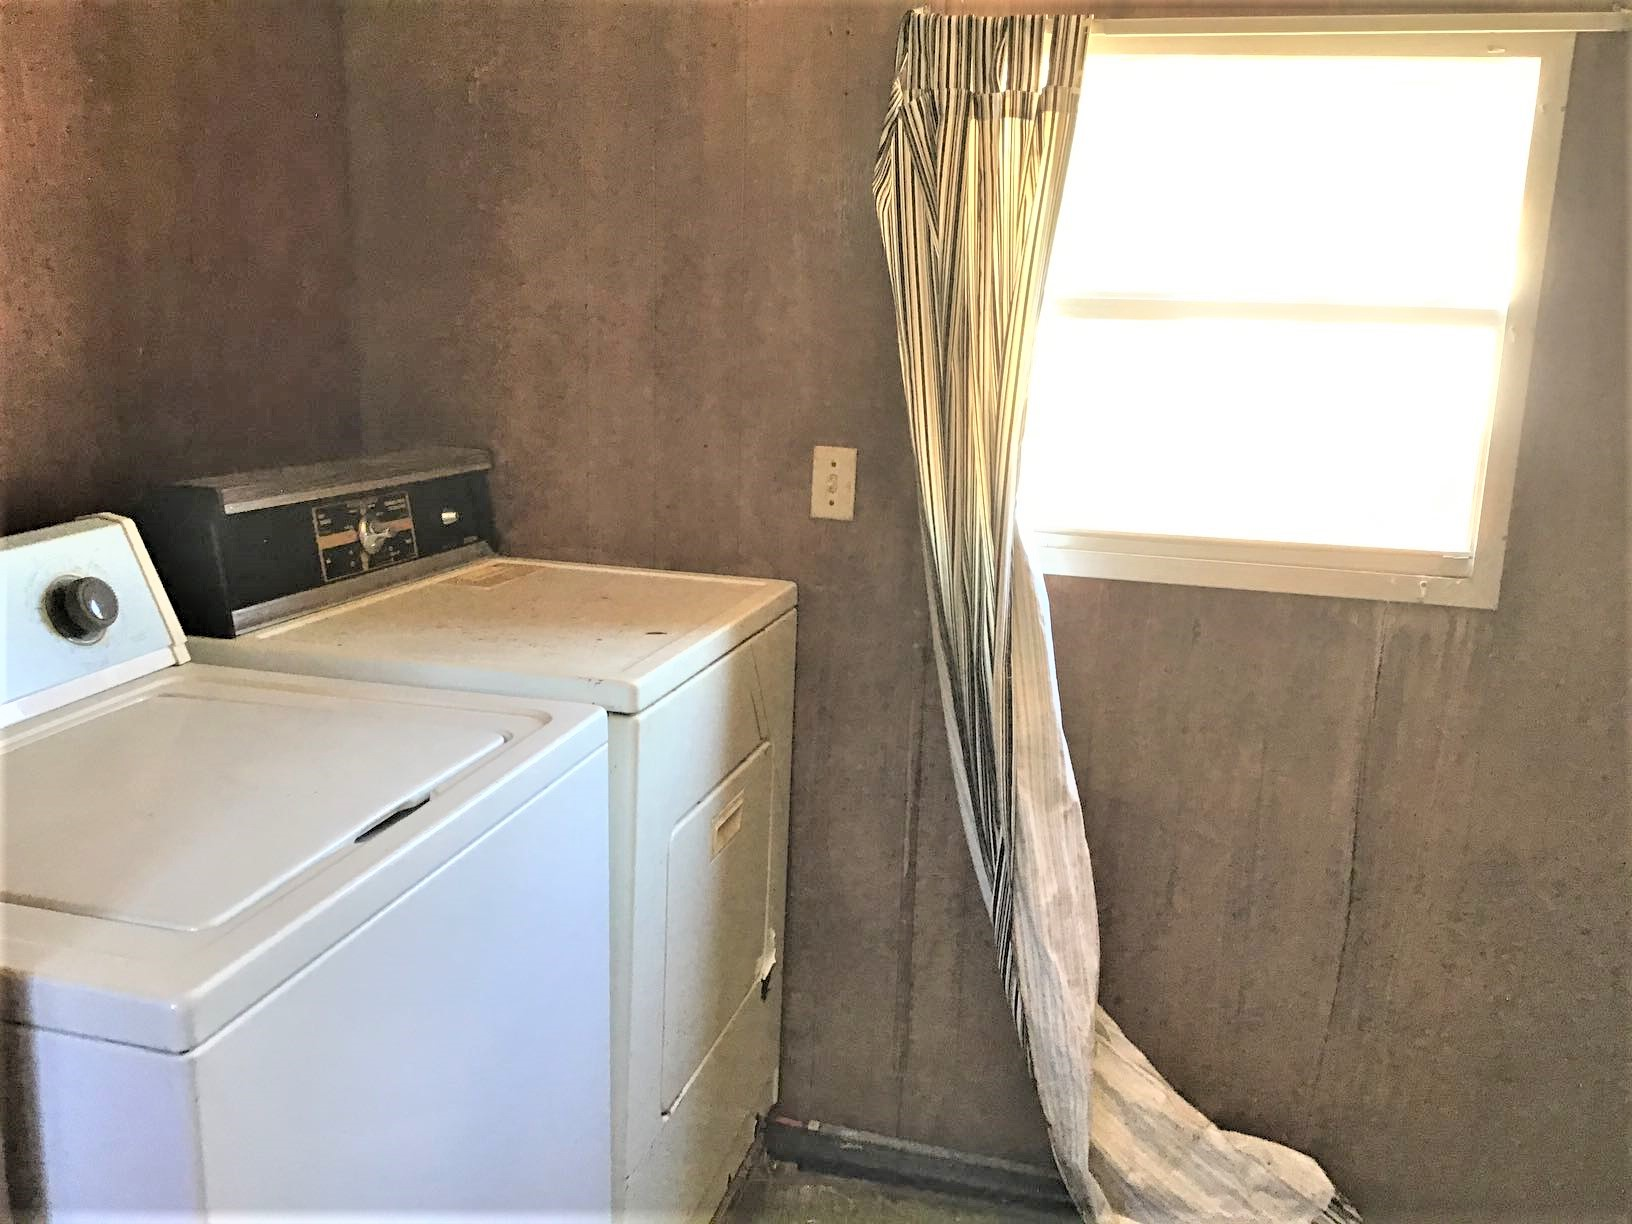 236-15 Emory Road, 1 Bedroom Bedrooms, ,1 BathroomBathrooms,Home,For Rent,Emory Road,1479